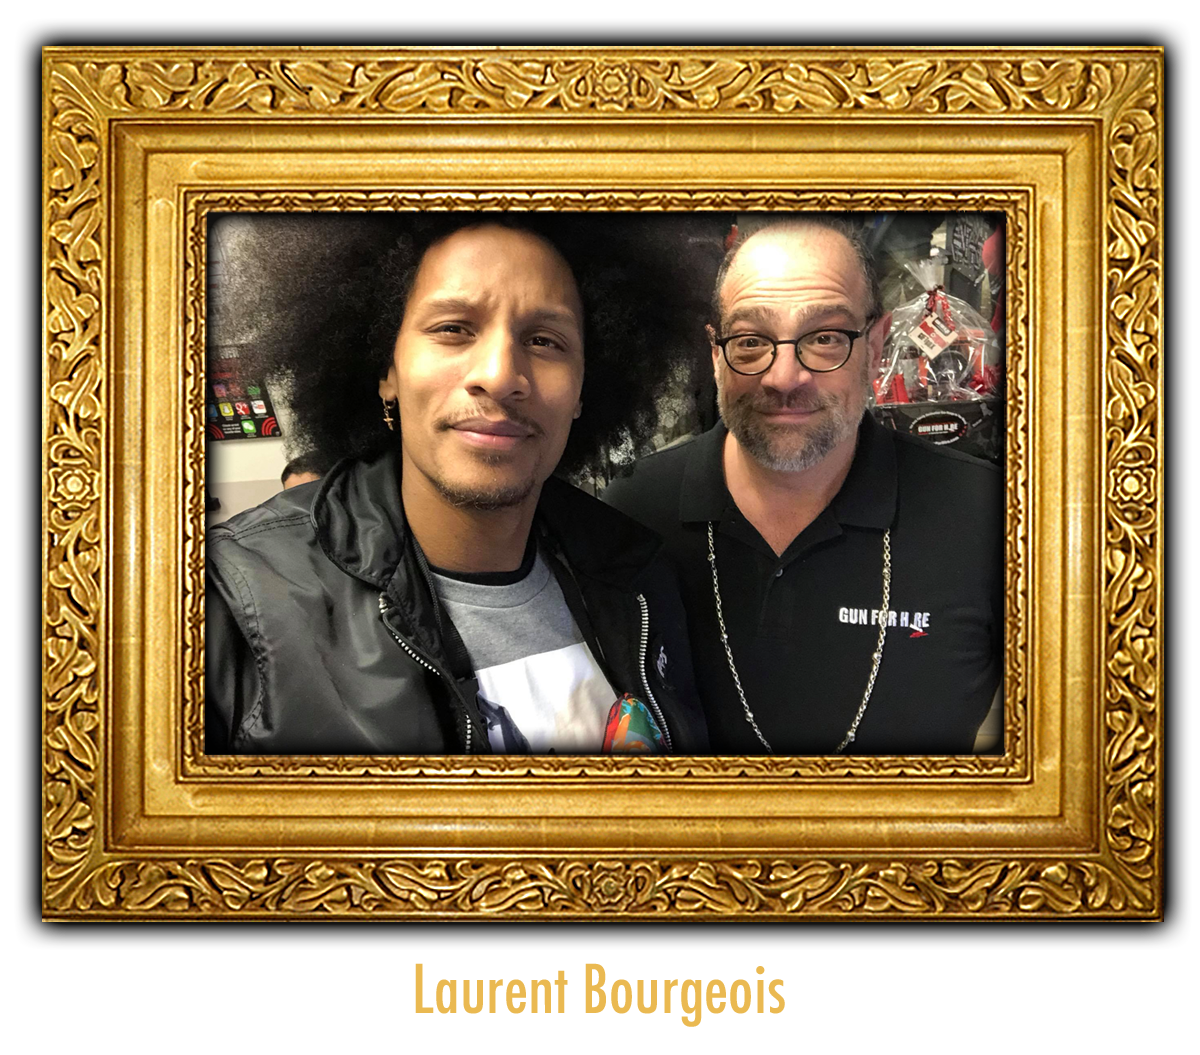 Laurent Bourgeois at Gun For Hire - VIP